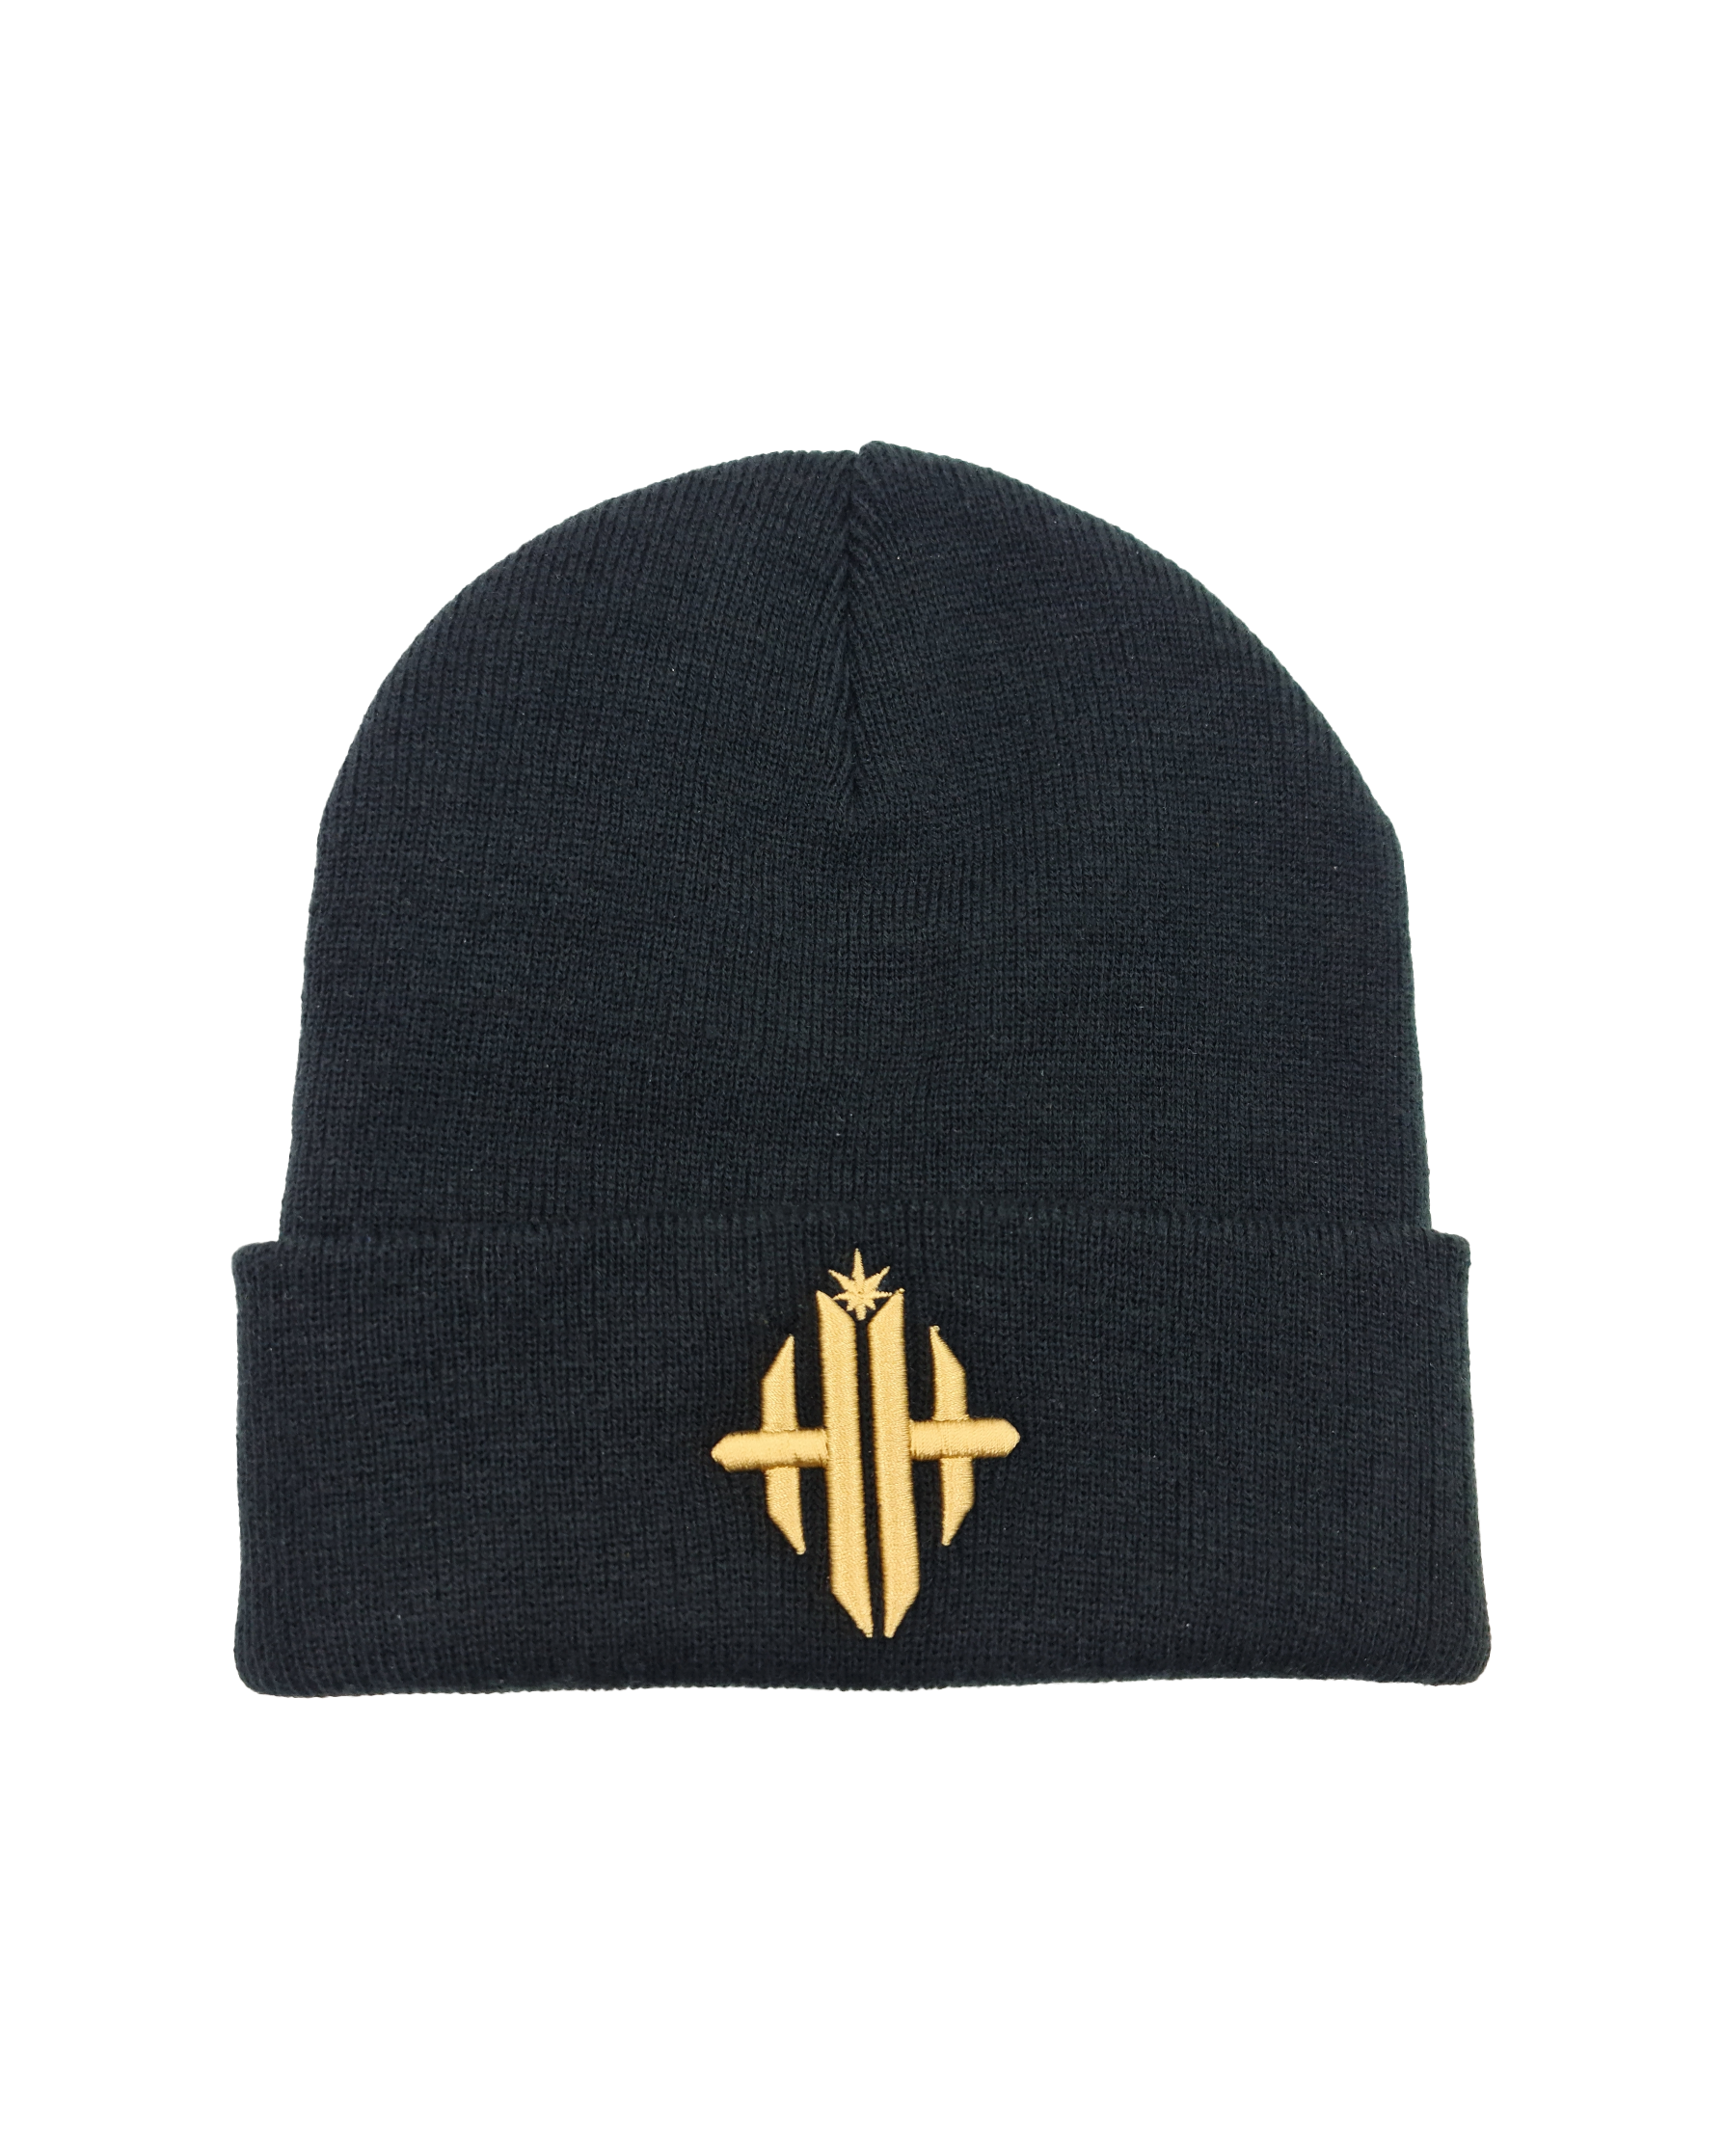 Herbman Hustlin Monogram Beanie - Black/Gold